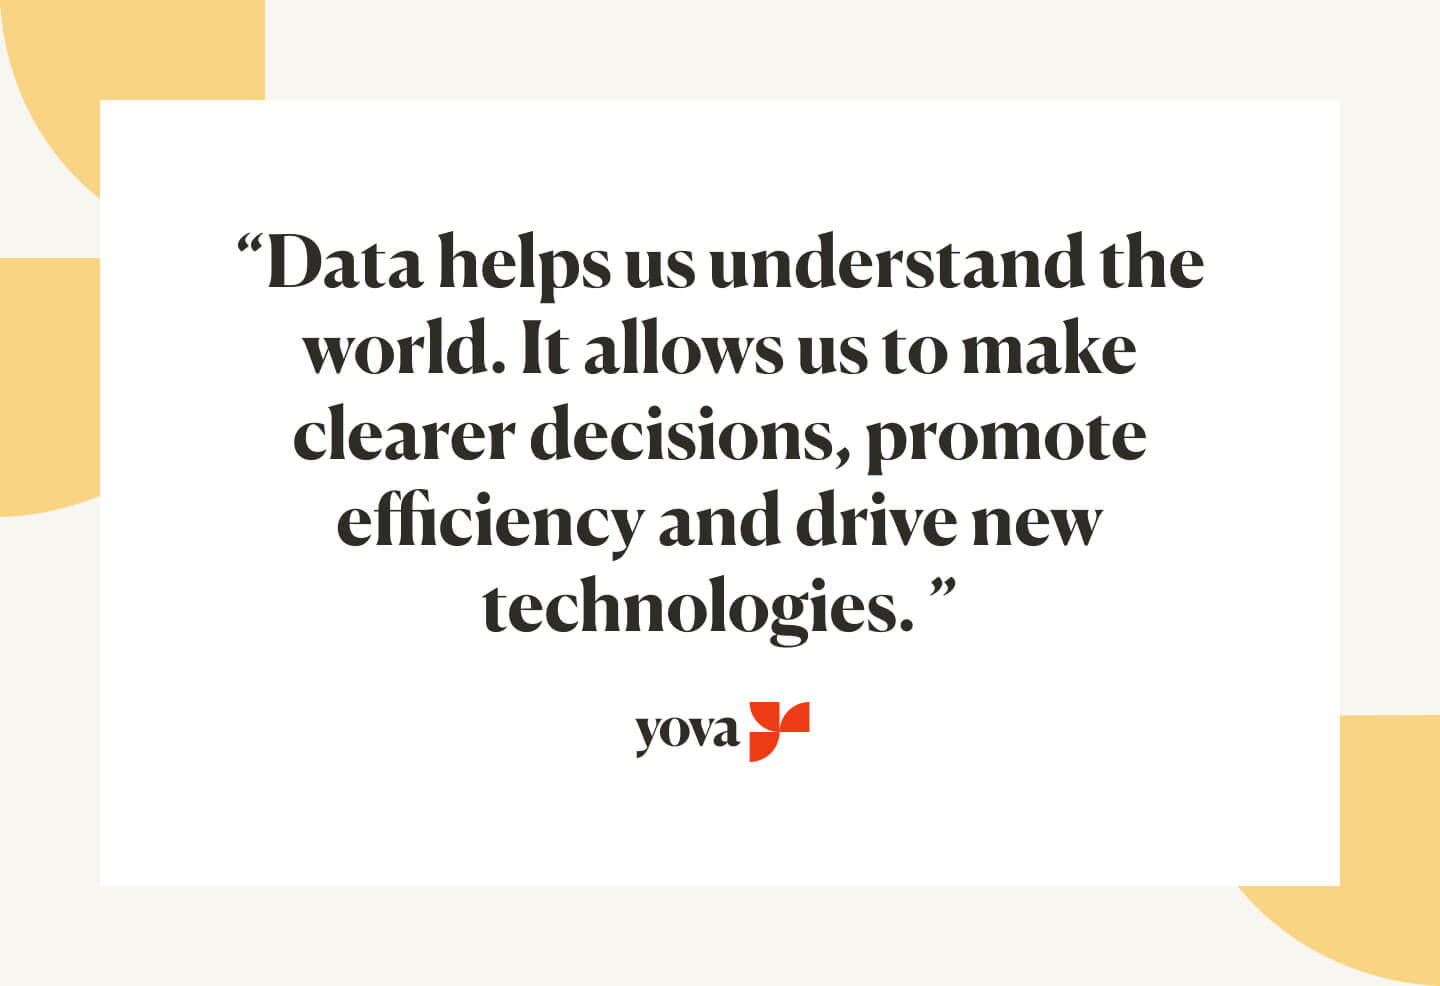 Importance of data to make decisions